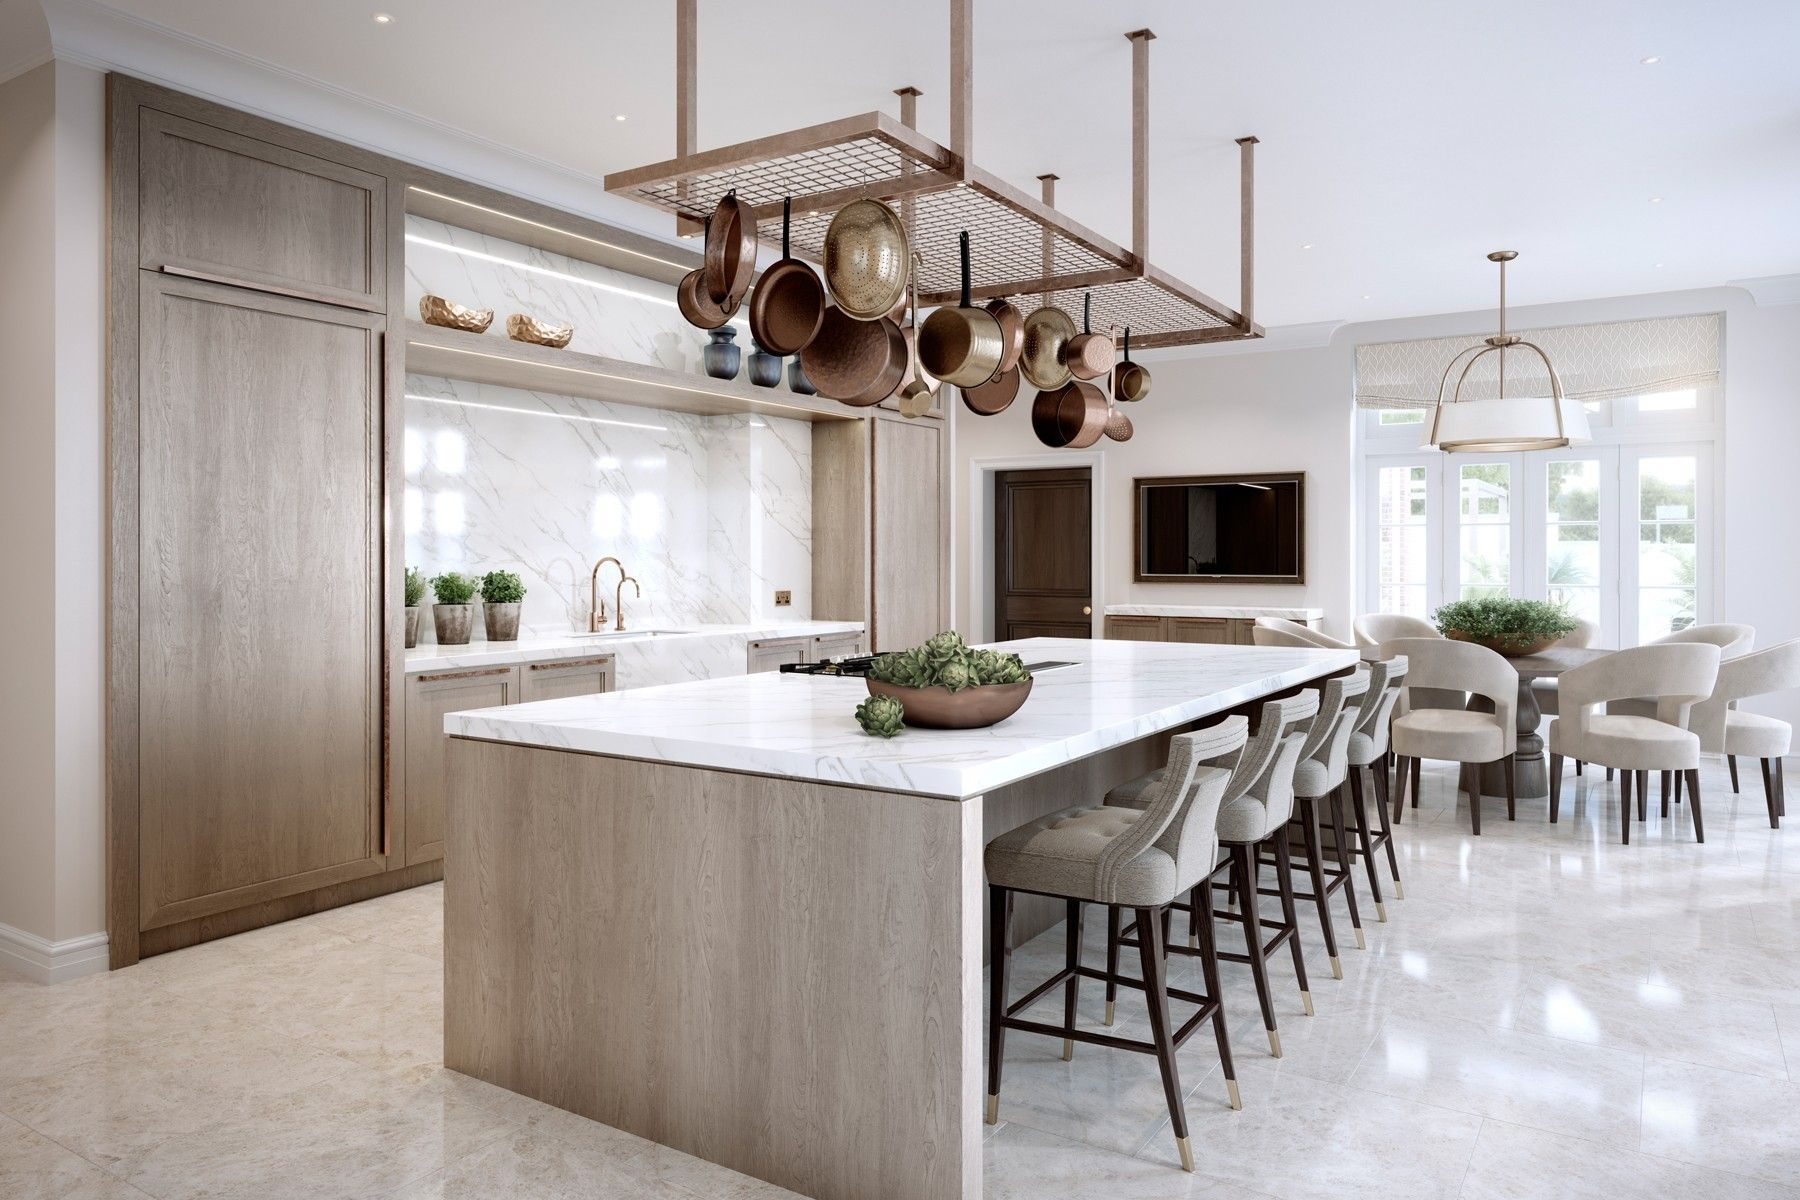 Kitchen seating ideas surrey family home luxury interior for Luxury home kitchen designs